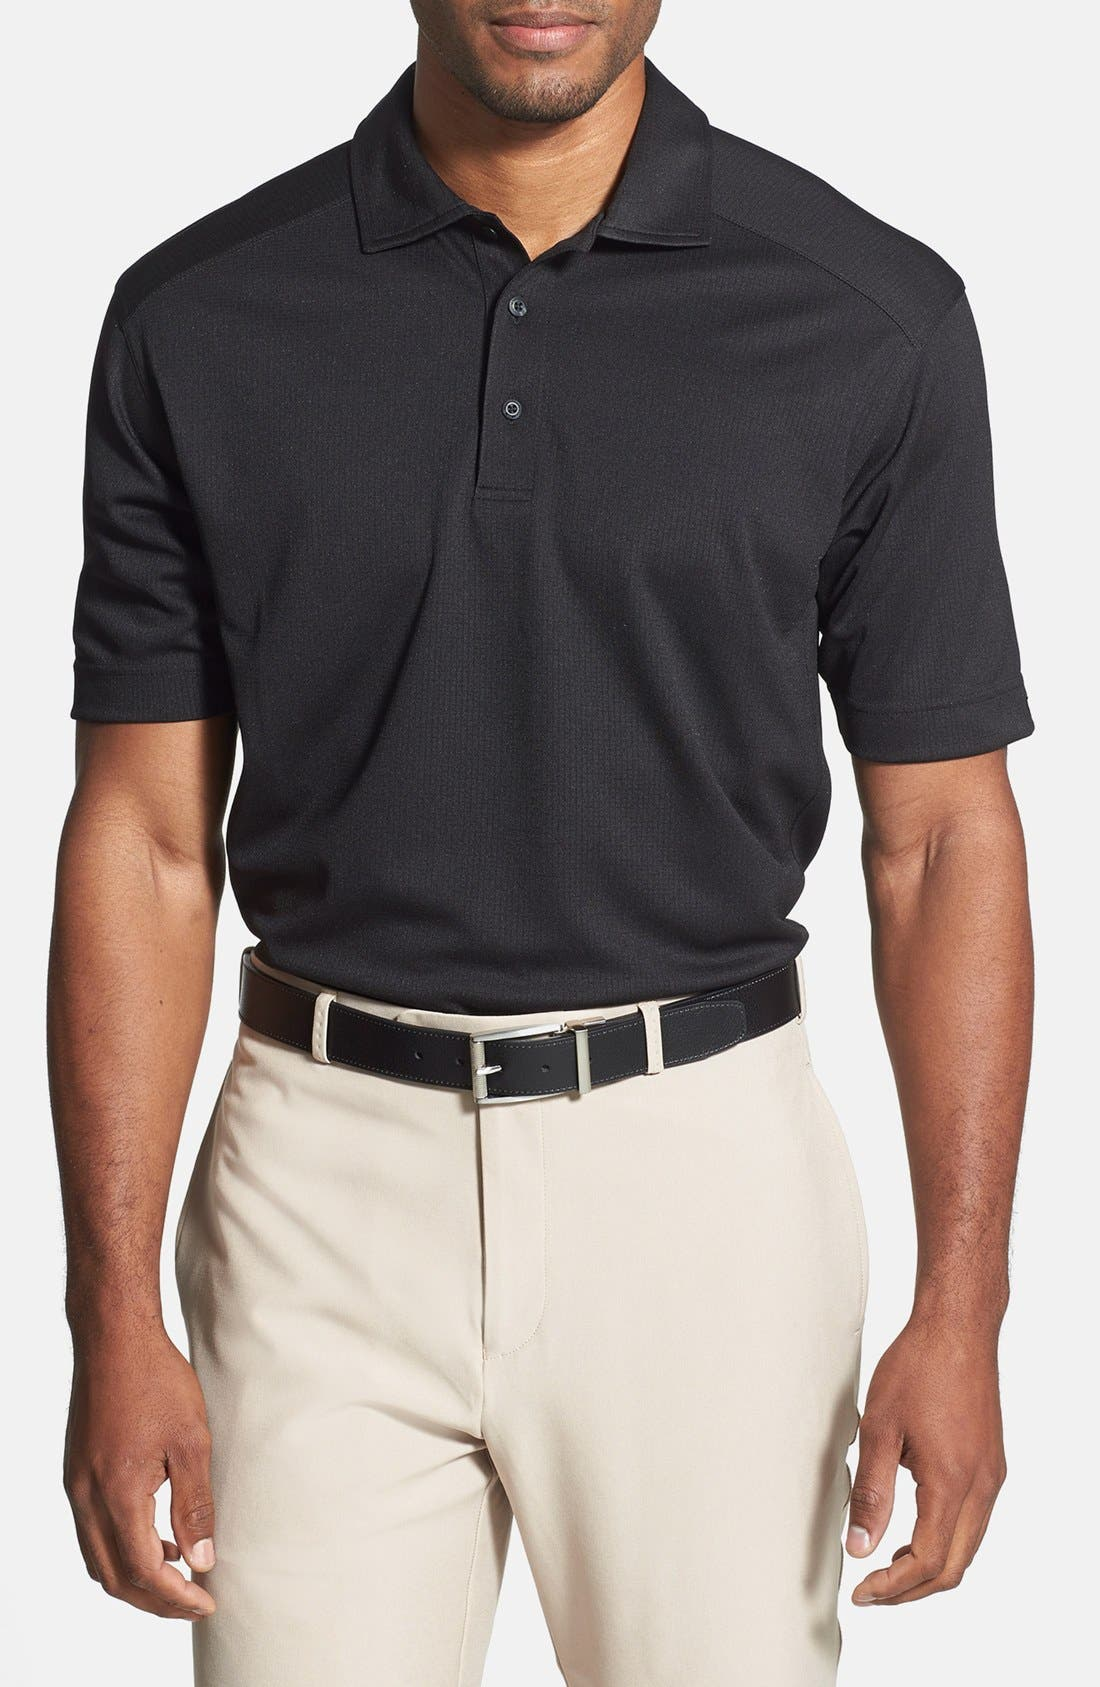 'Genre' DryTec Moisture Wicking Polo,                         Main,                         color, BLACK